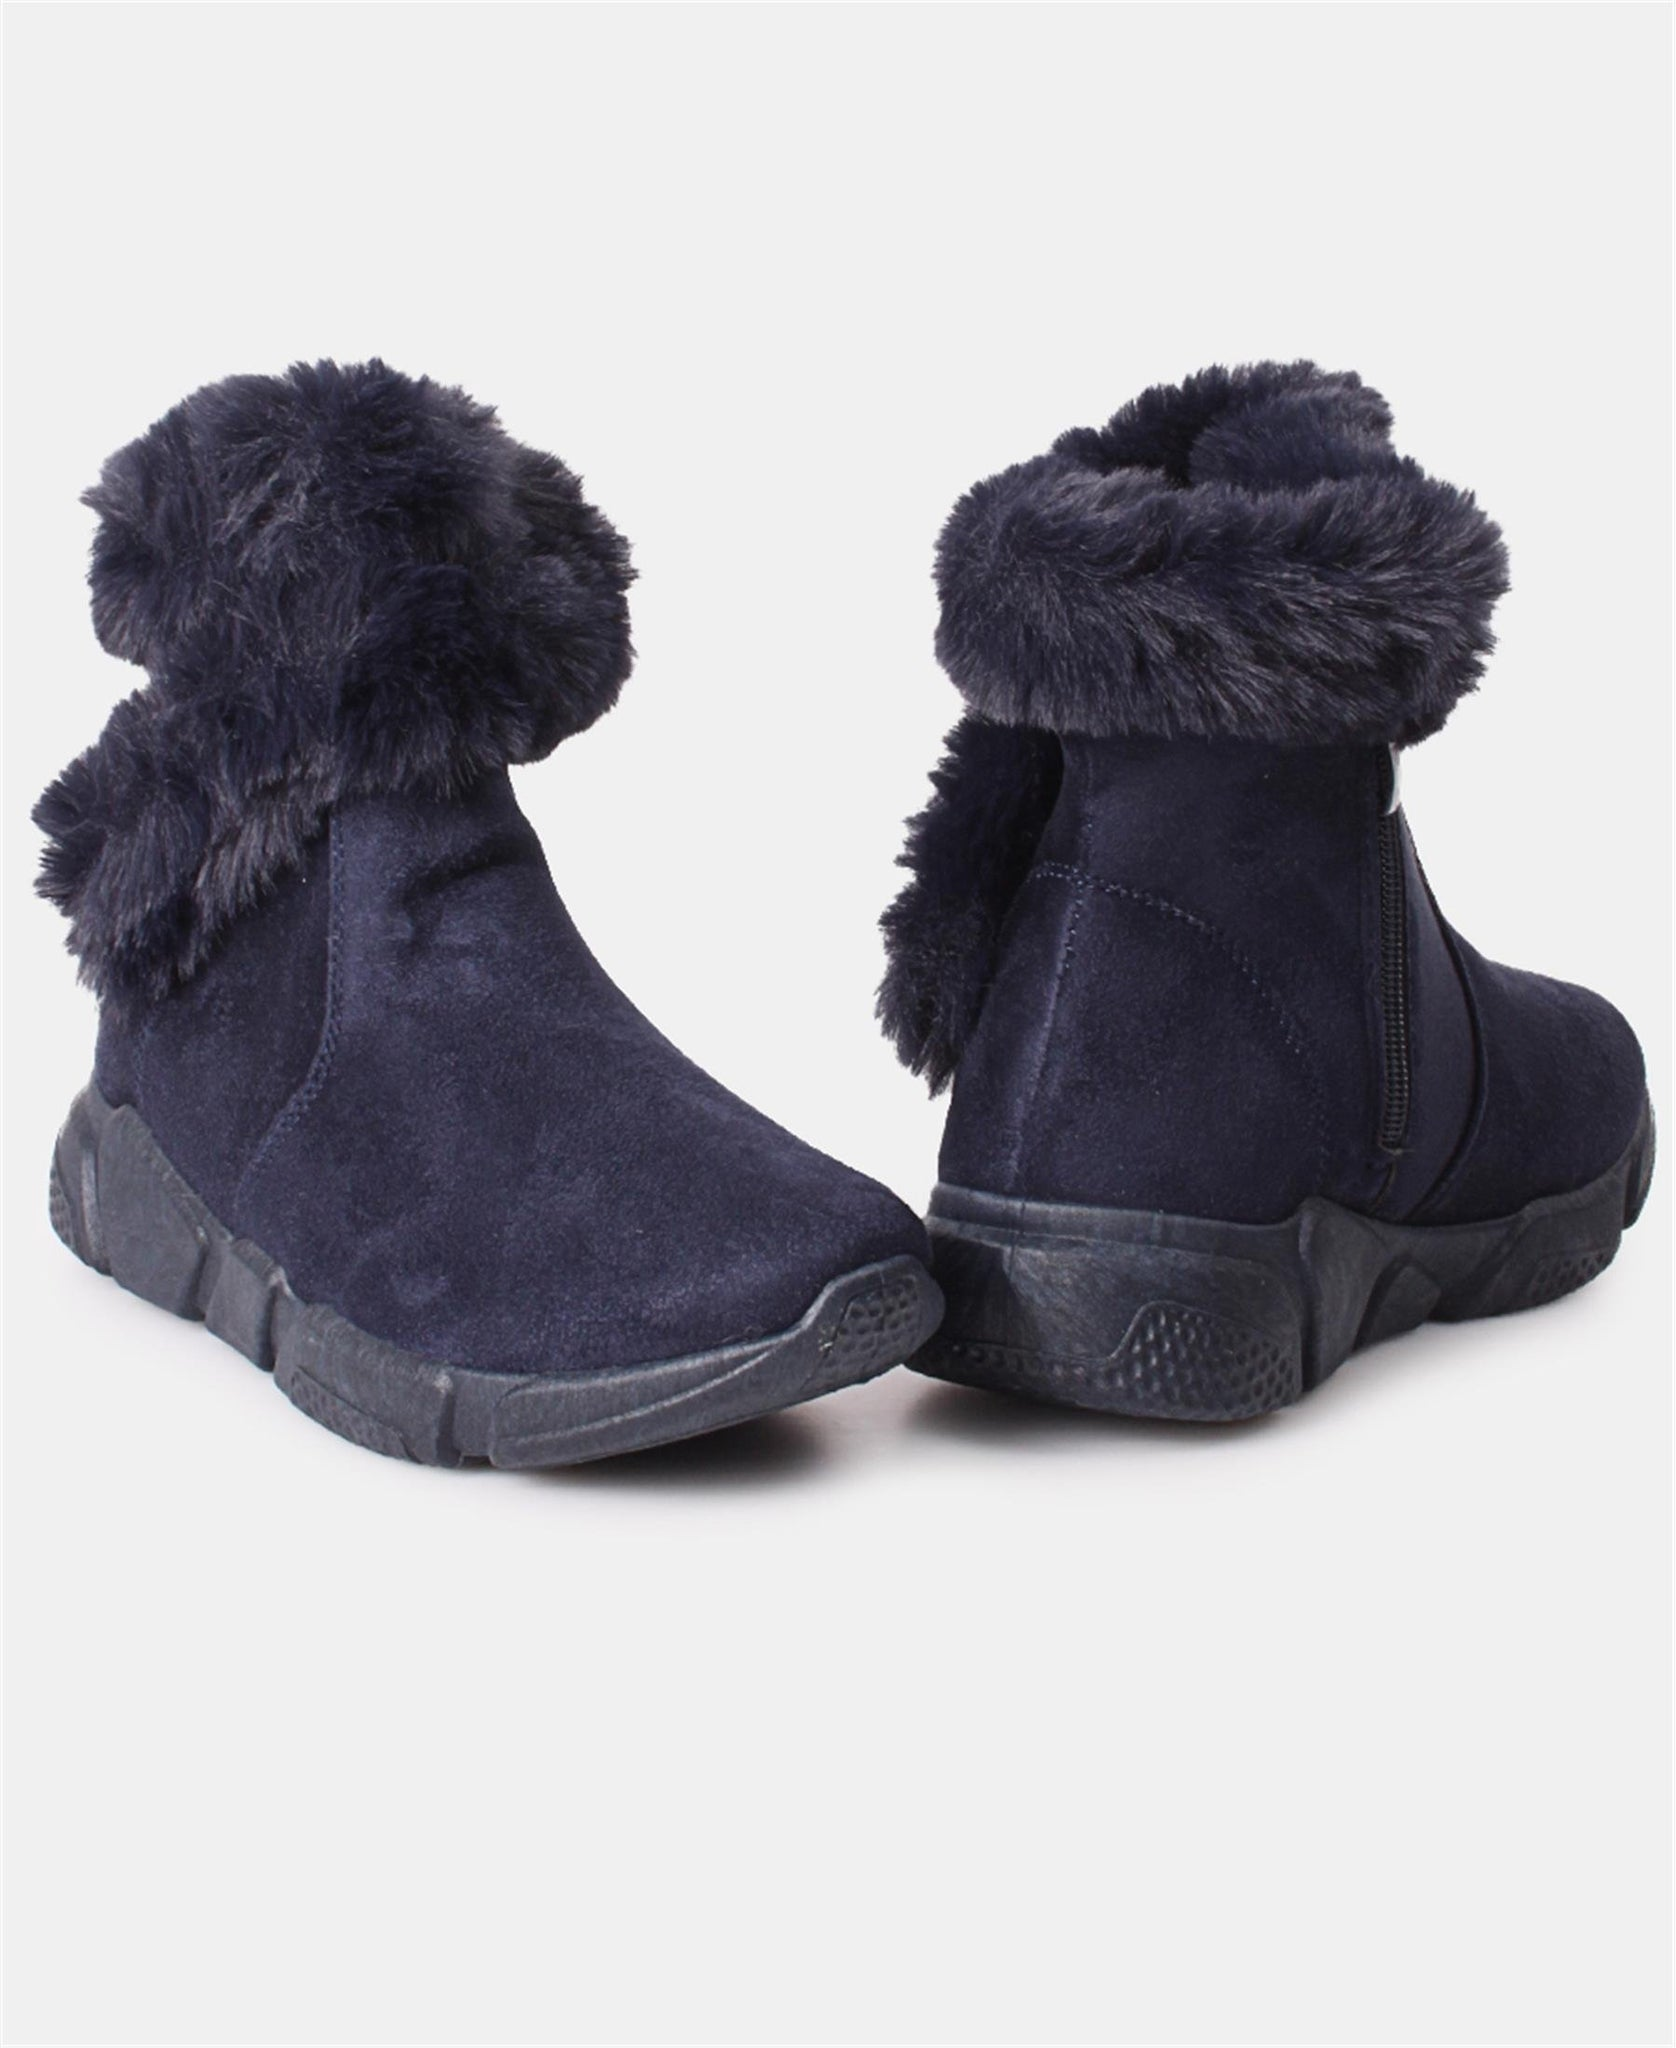 Ladies' Fur Boots - Navy